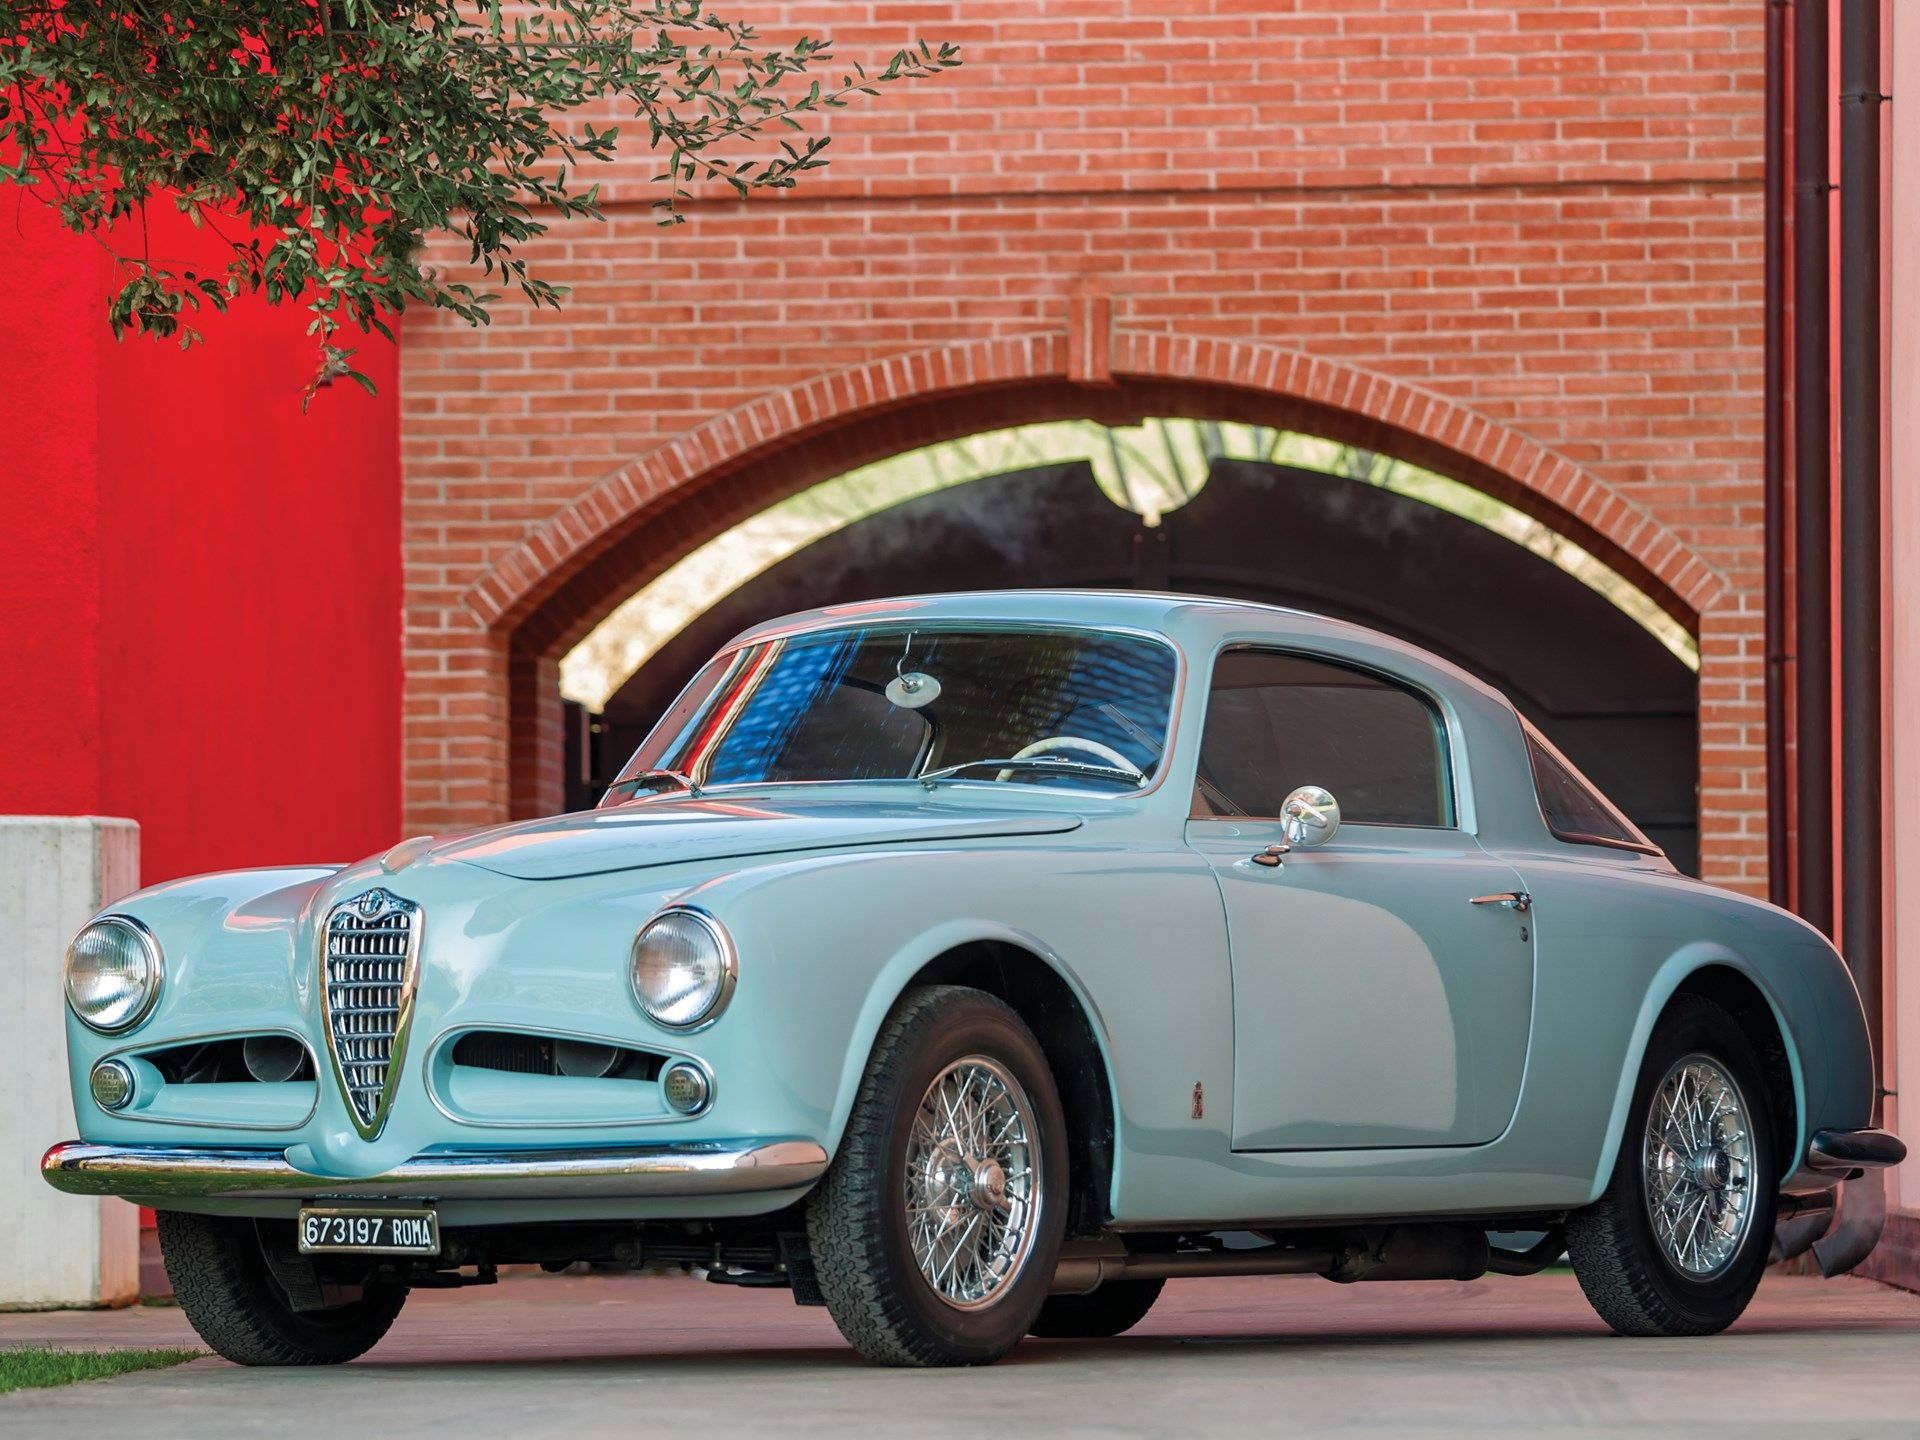 Introduced As A Sedan In 1950 The 1900 Coupe Was Alfa Romeo S Spearhead Gt For Privateers And Gentlemen Drivers With The Introd Alfa Romeo Classic Cars Sedan